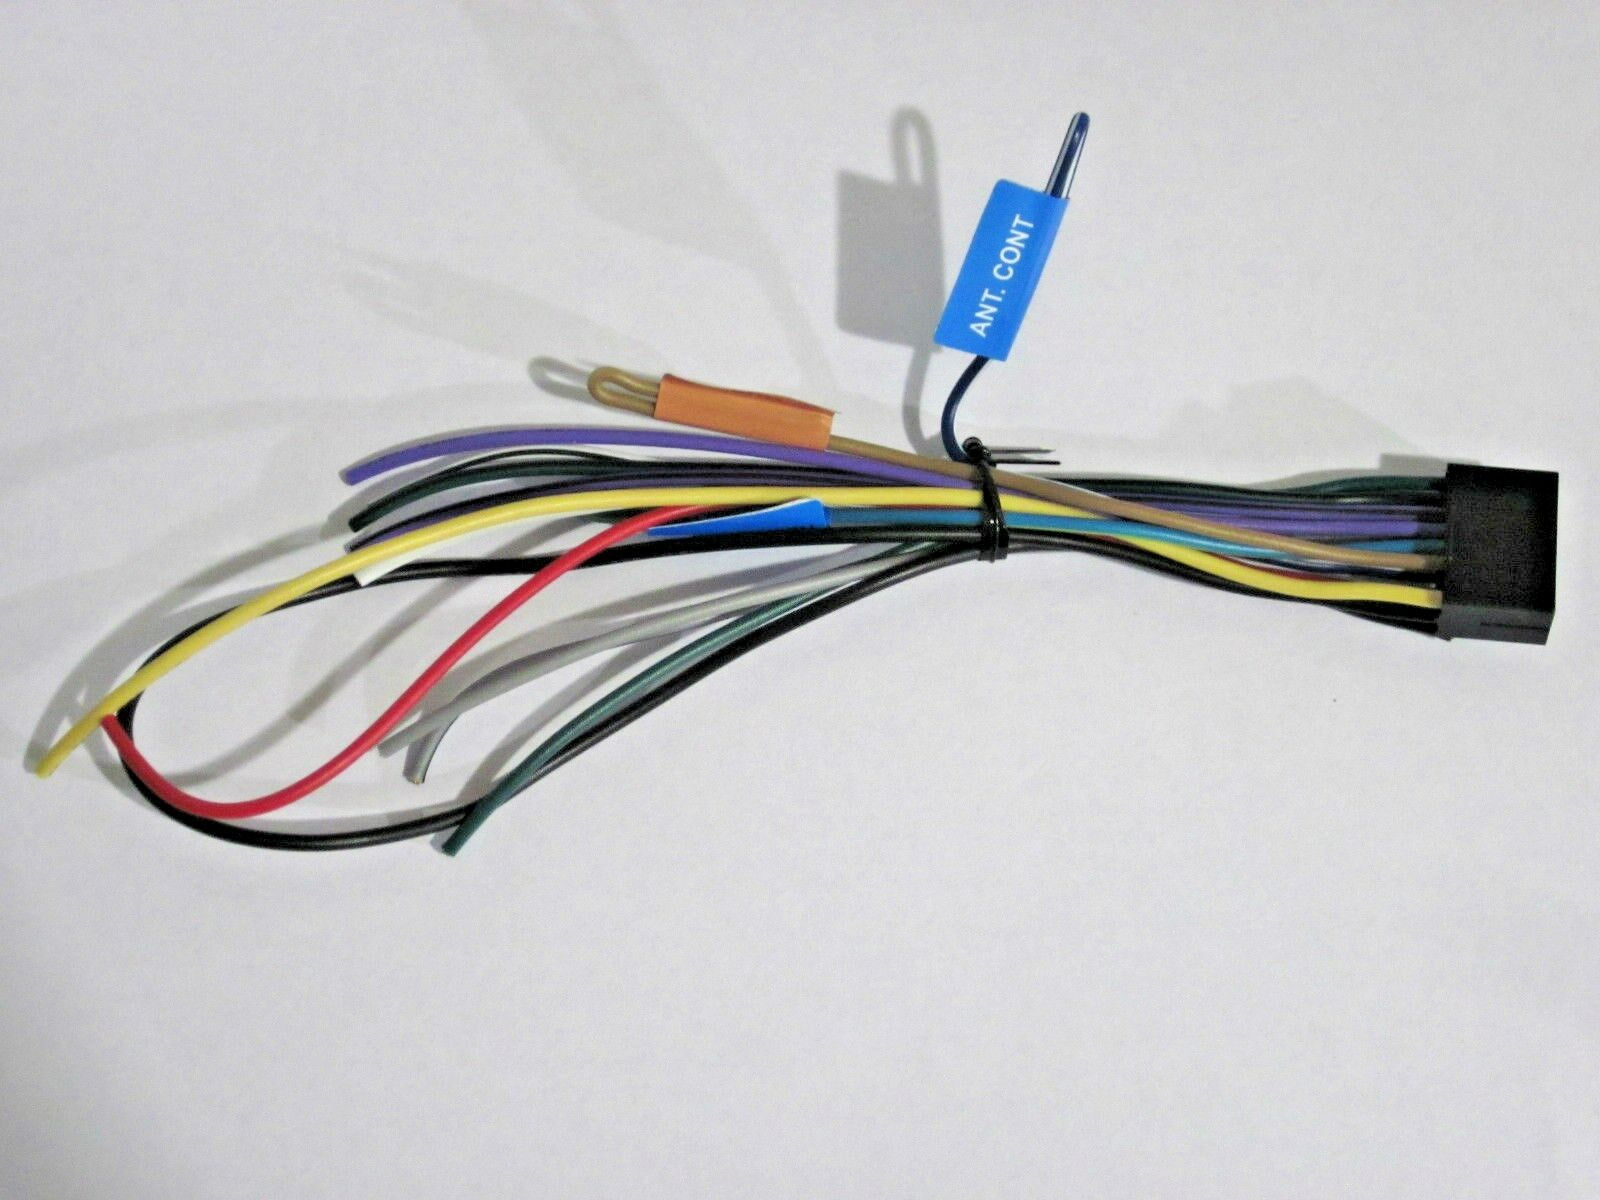 Kenwood Wiring Harness P Cont Electrical Diagrams Ddx512 Wire Original Kdc X300 Oem W6 11 55 Picclick Technic